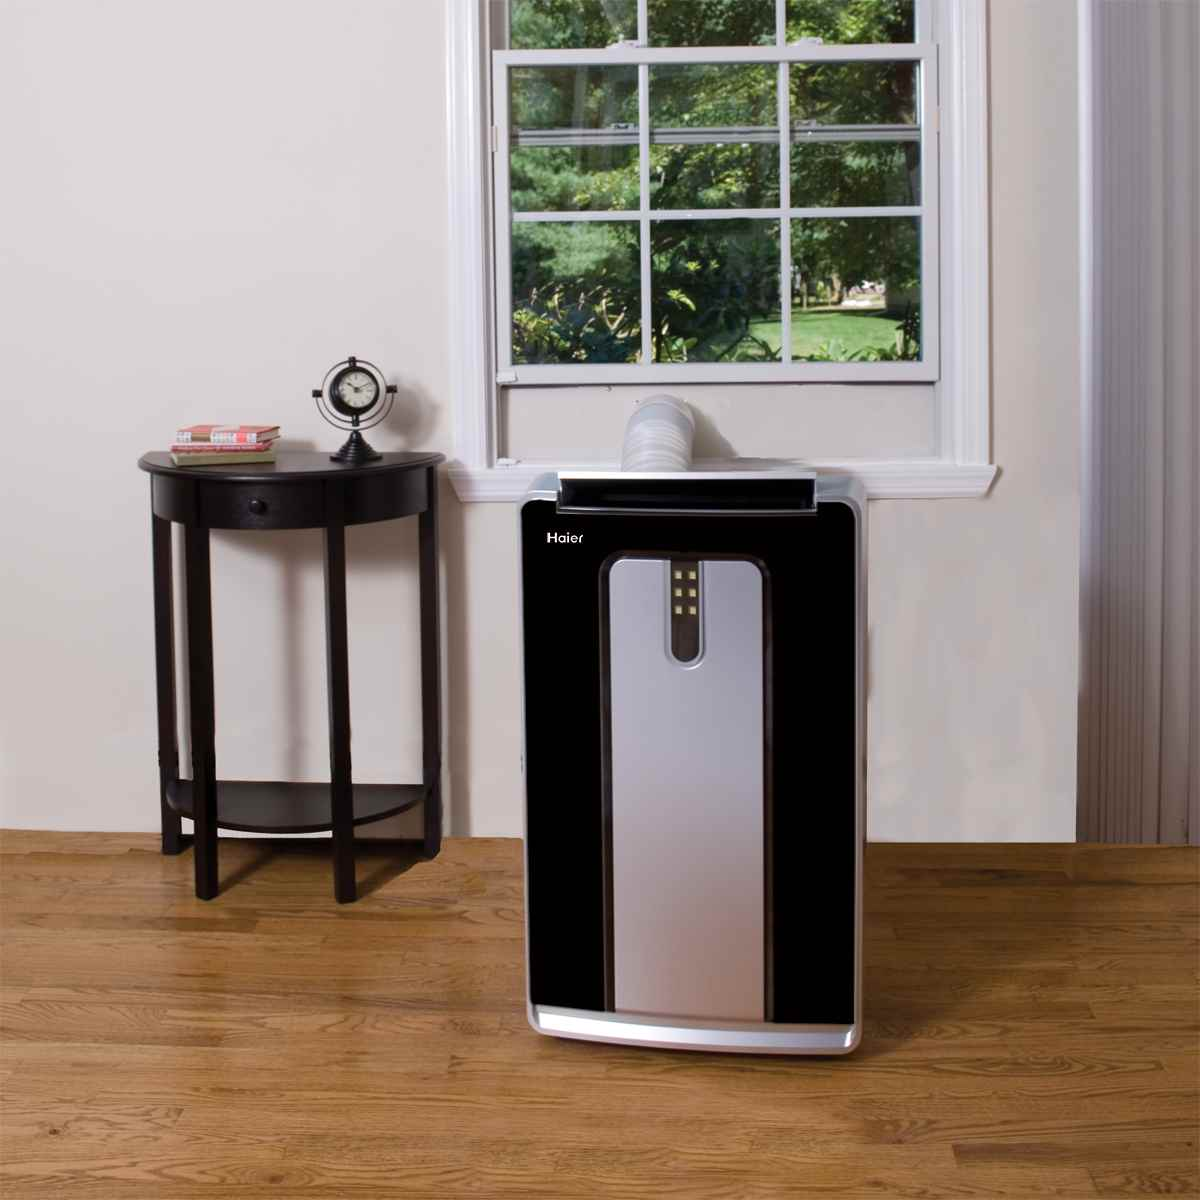 Chill Out This Summer With A Portable Air Conditioner Best Buy Blog